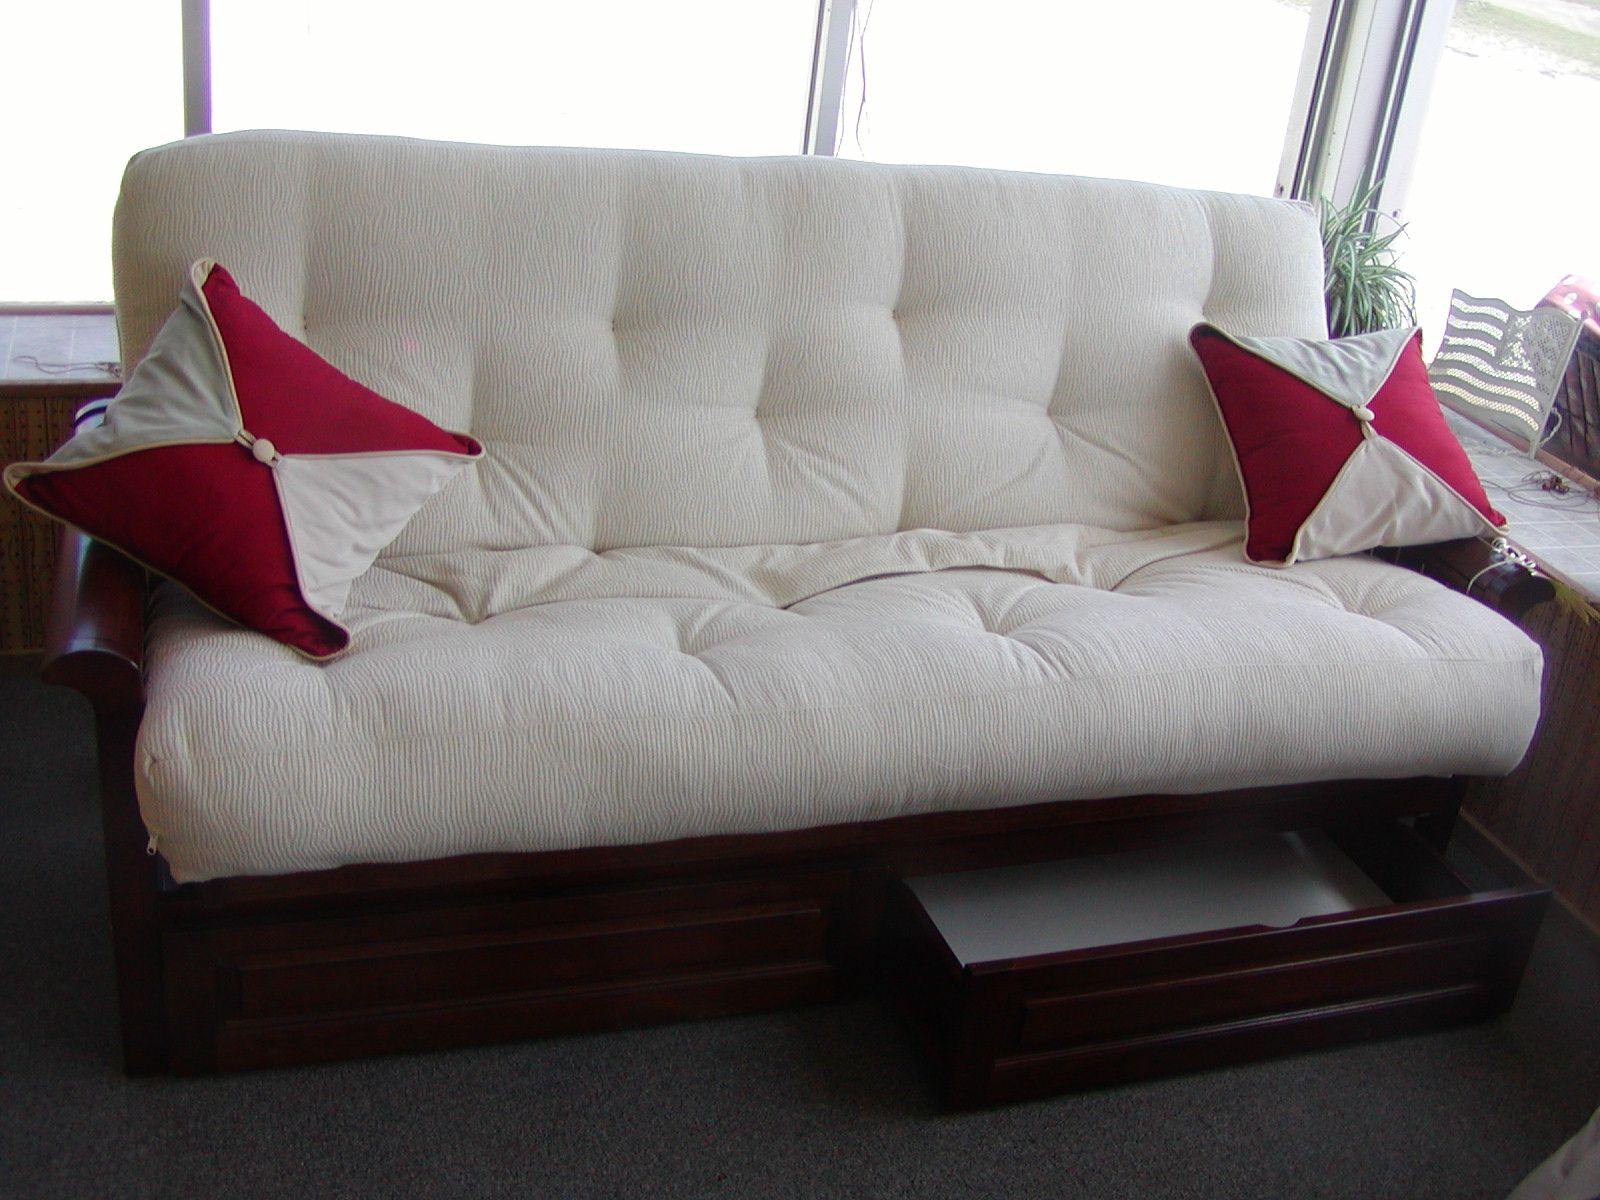 chicago sofa bed modern wood set comfy futons not crappy home sweet